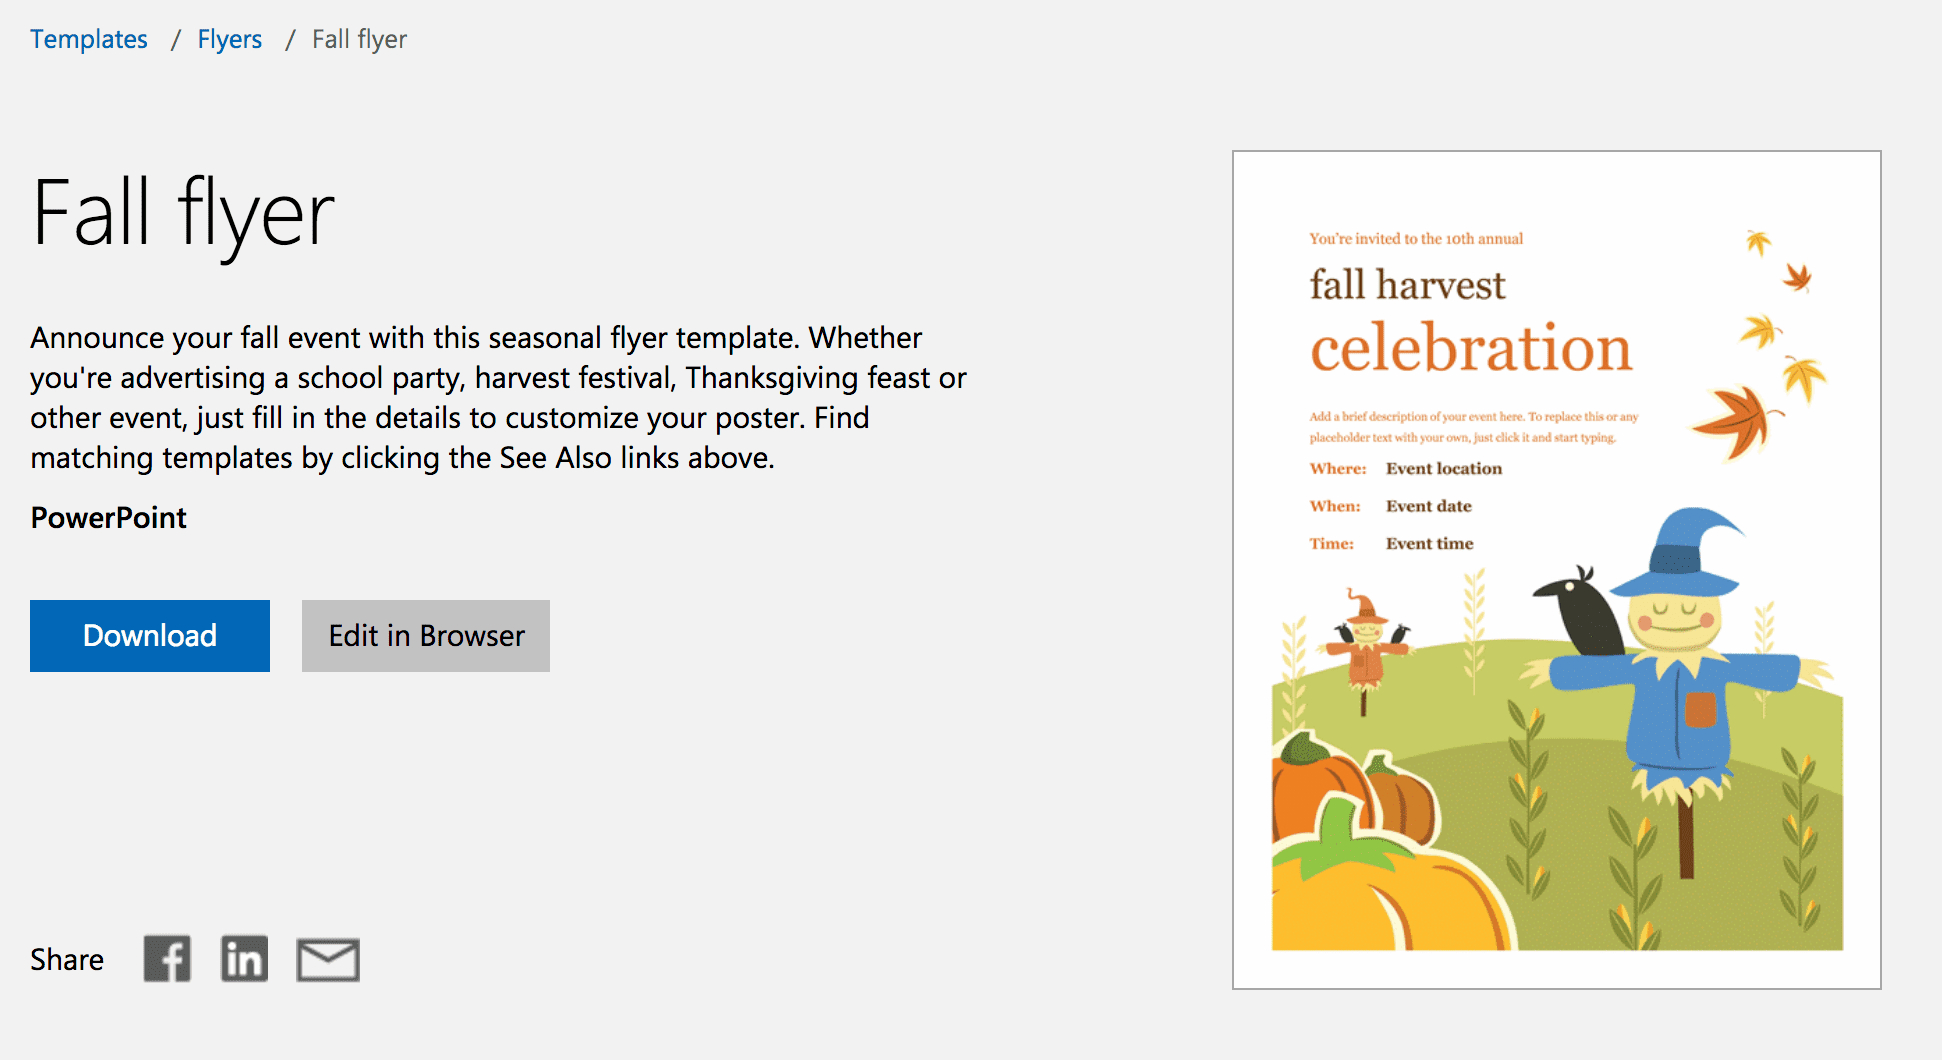 Free Autumn Theme Templates For Microsoft Office - Free Printable Fall Flyer Templates